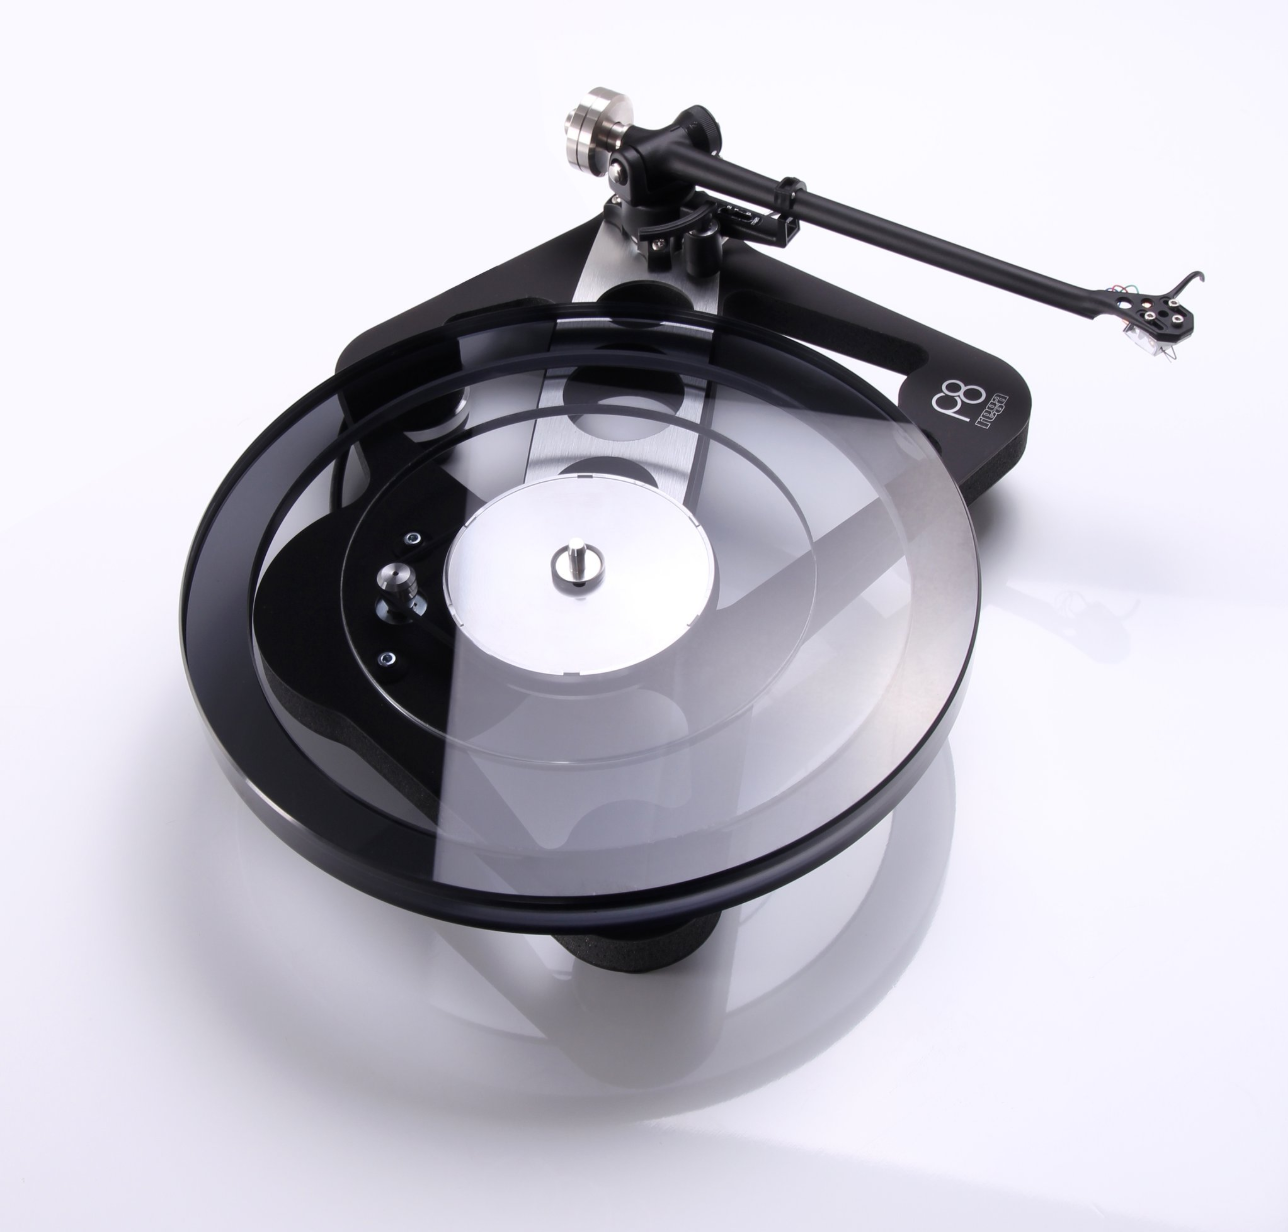 rega 8 top view